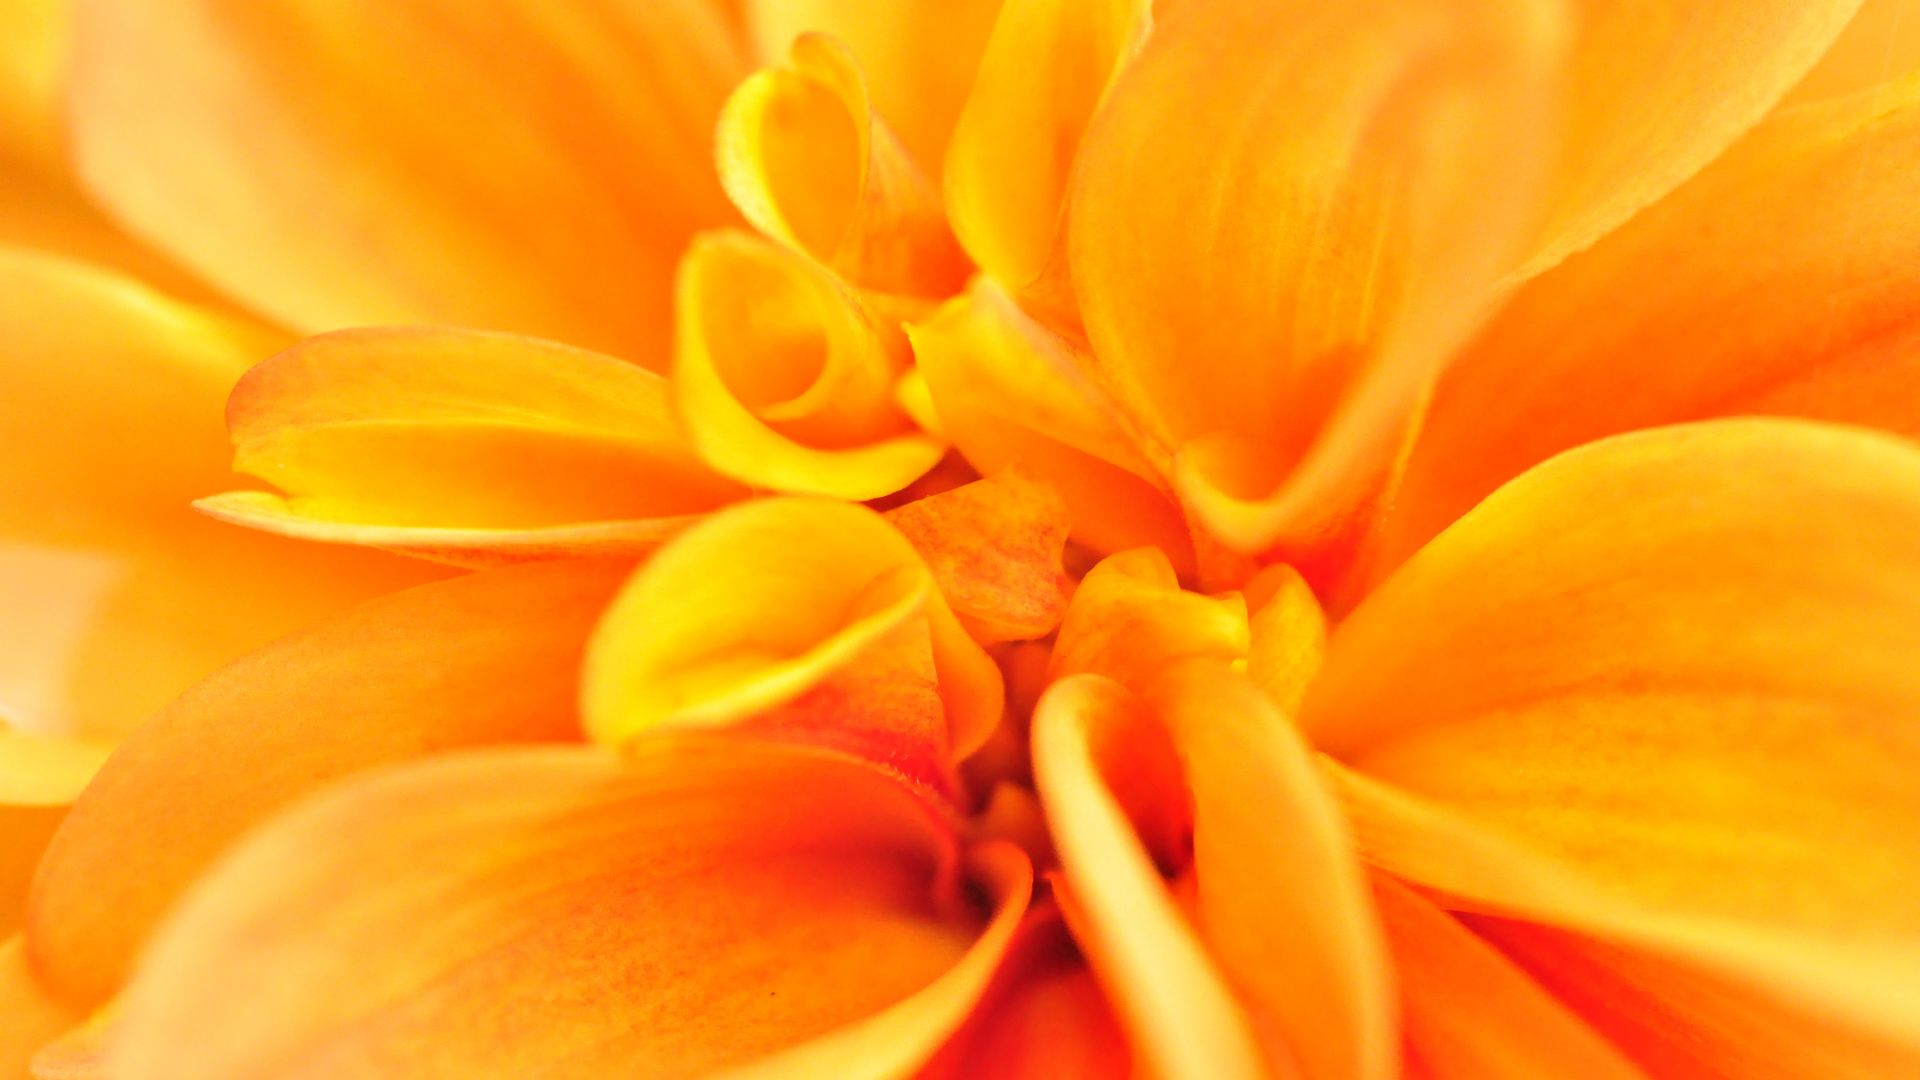 макро, цветок, macro, flower, orange, 4k (horizontal)